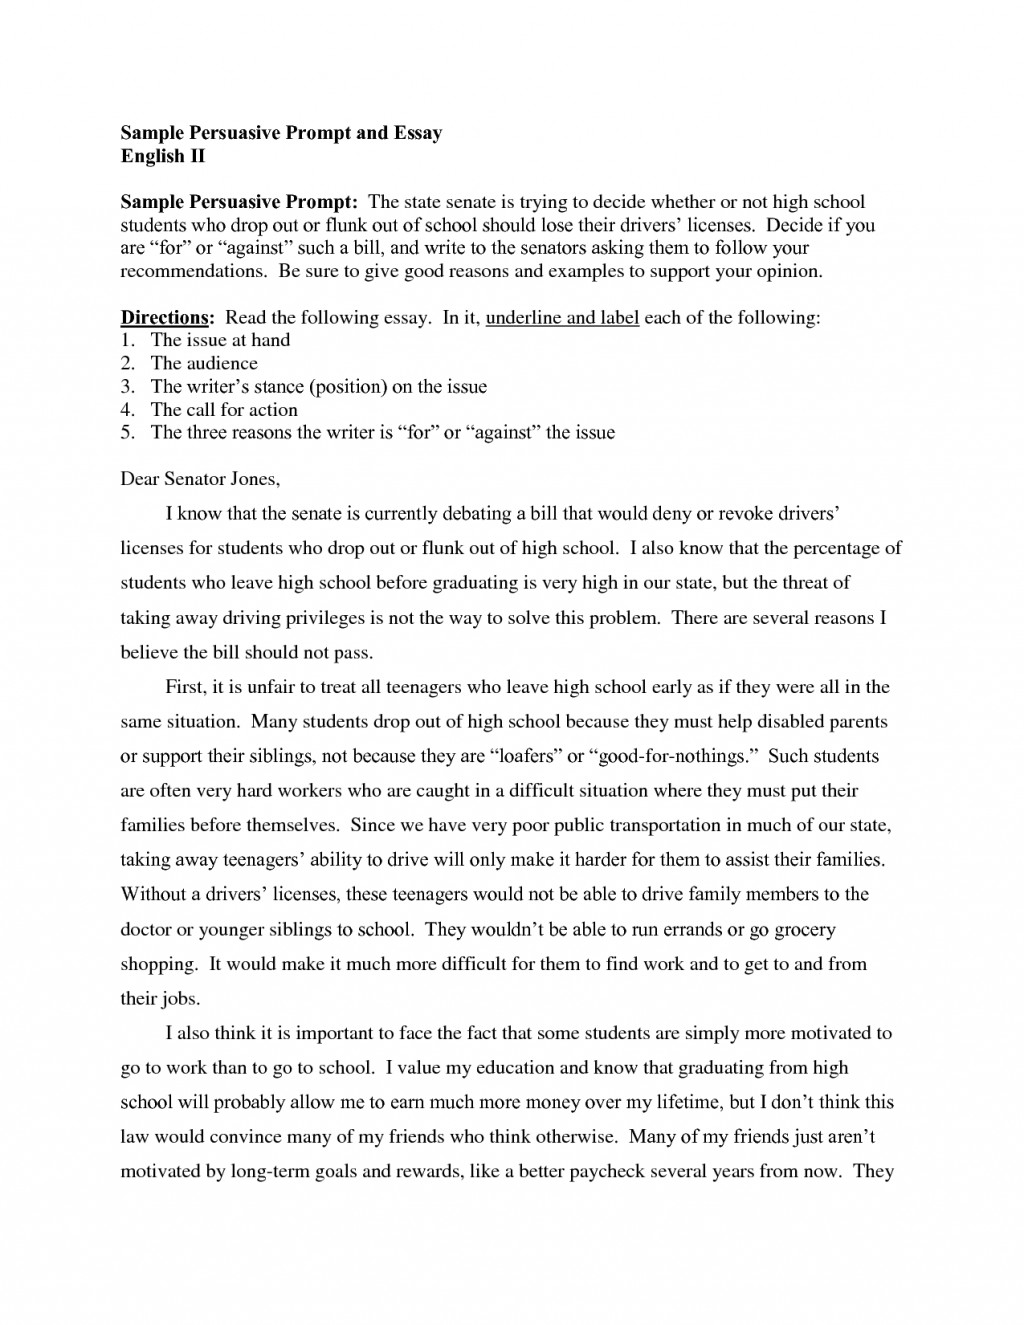 011 Argumentative Research Paper Topics High School Persuasive Essay For Sample Ideas Highschool Students Good Prompt Funny Easy Fun List Of Seniors Writing English Excellent Large